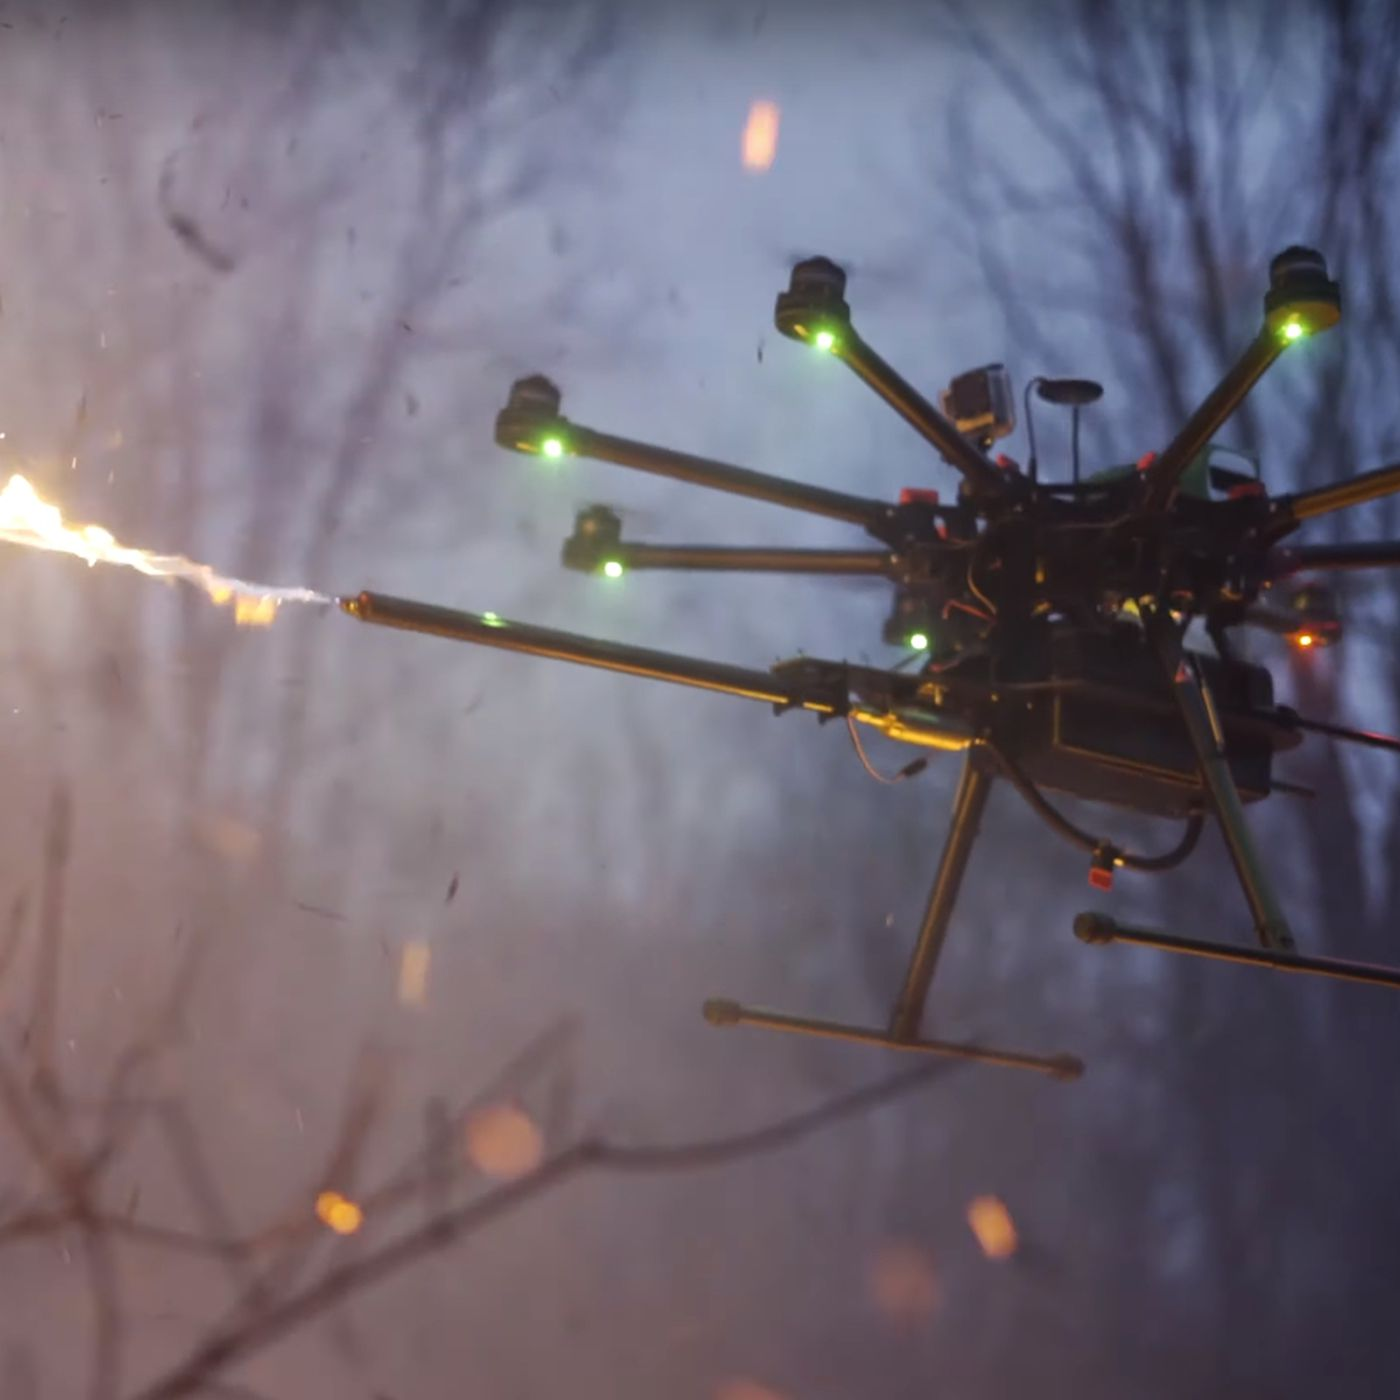 The flamethrower drone will soon be a thing you can buy